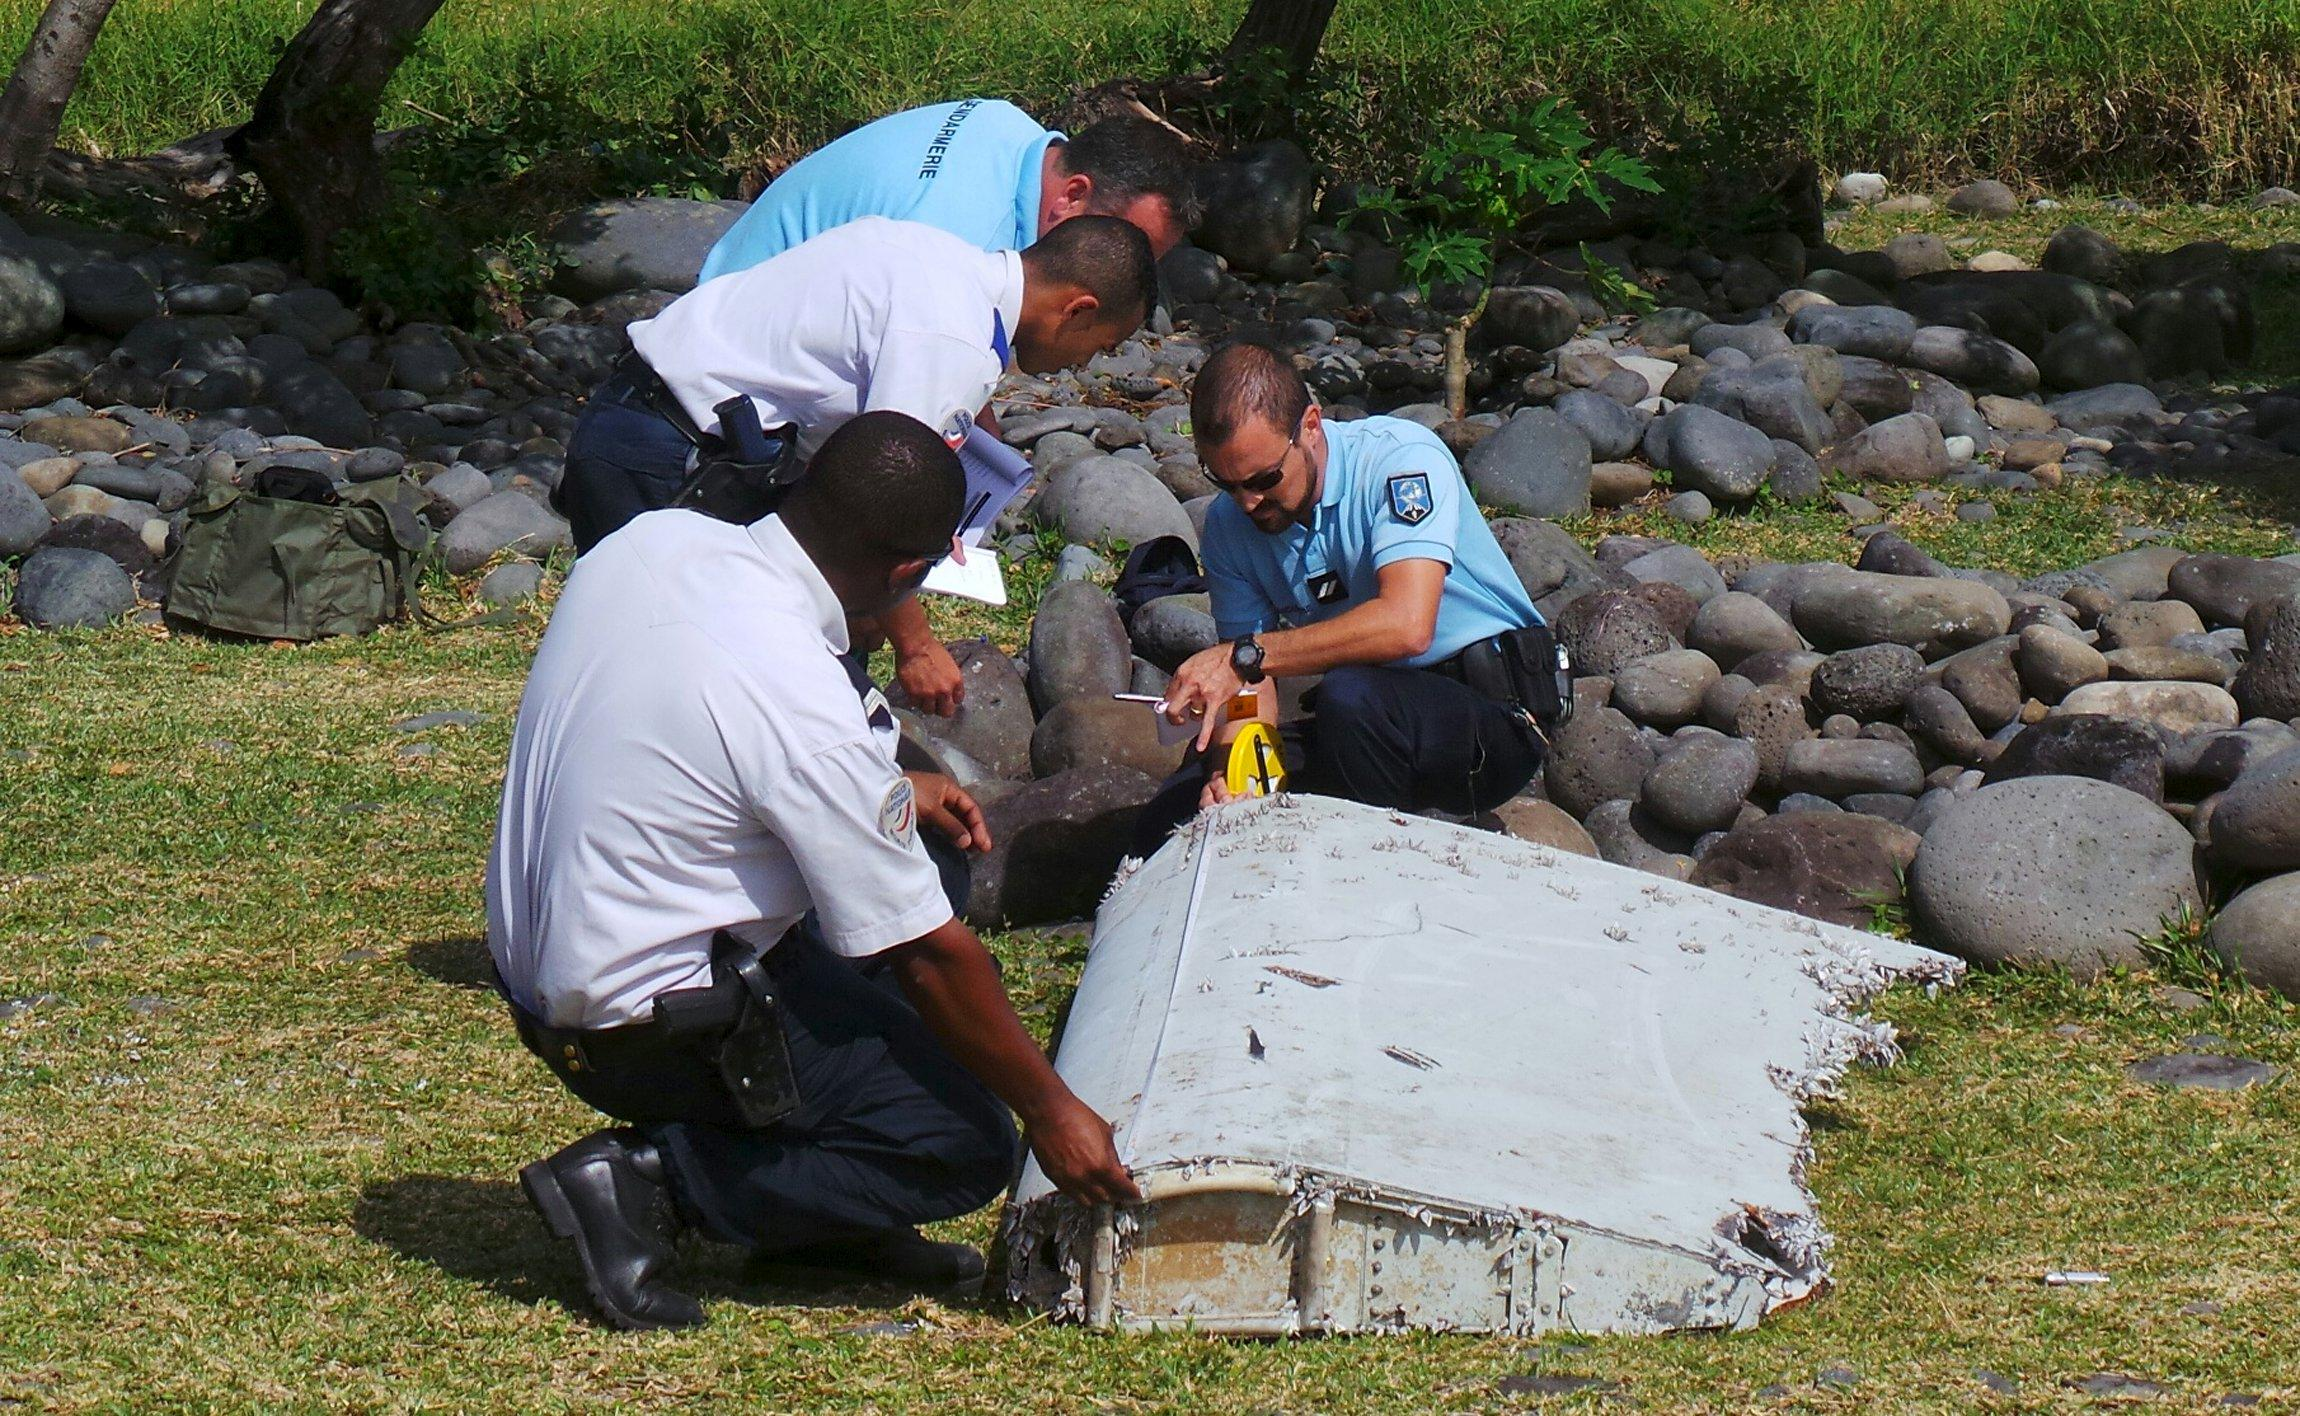 2015-07-30T071848Z_695988572_GF20000008469_RTRMADP_3_MALAYSIA-AIRLINES-CRASH